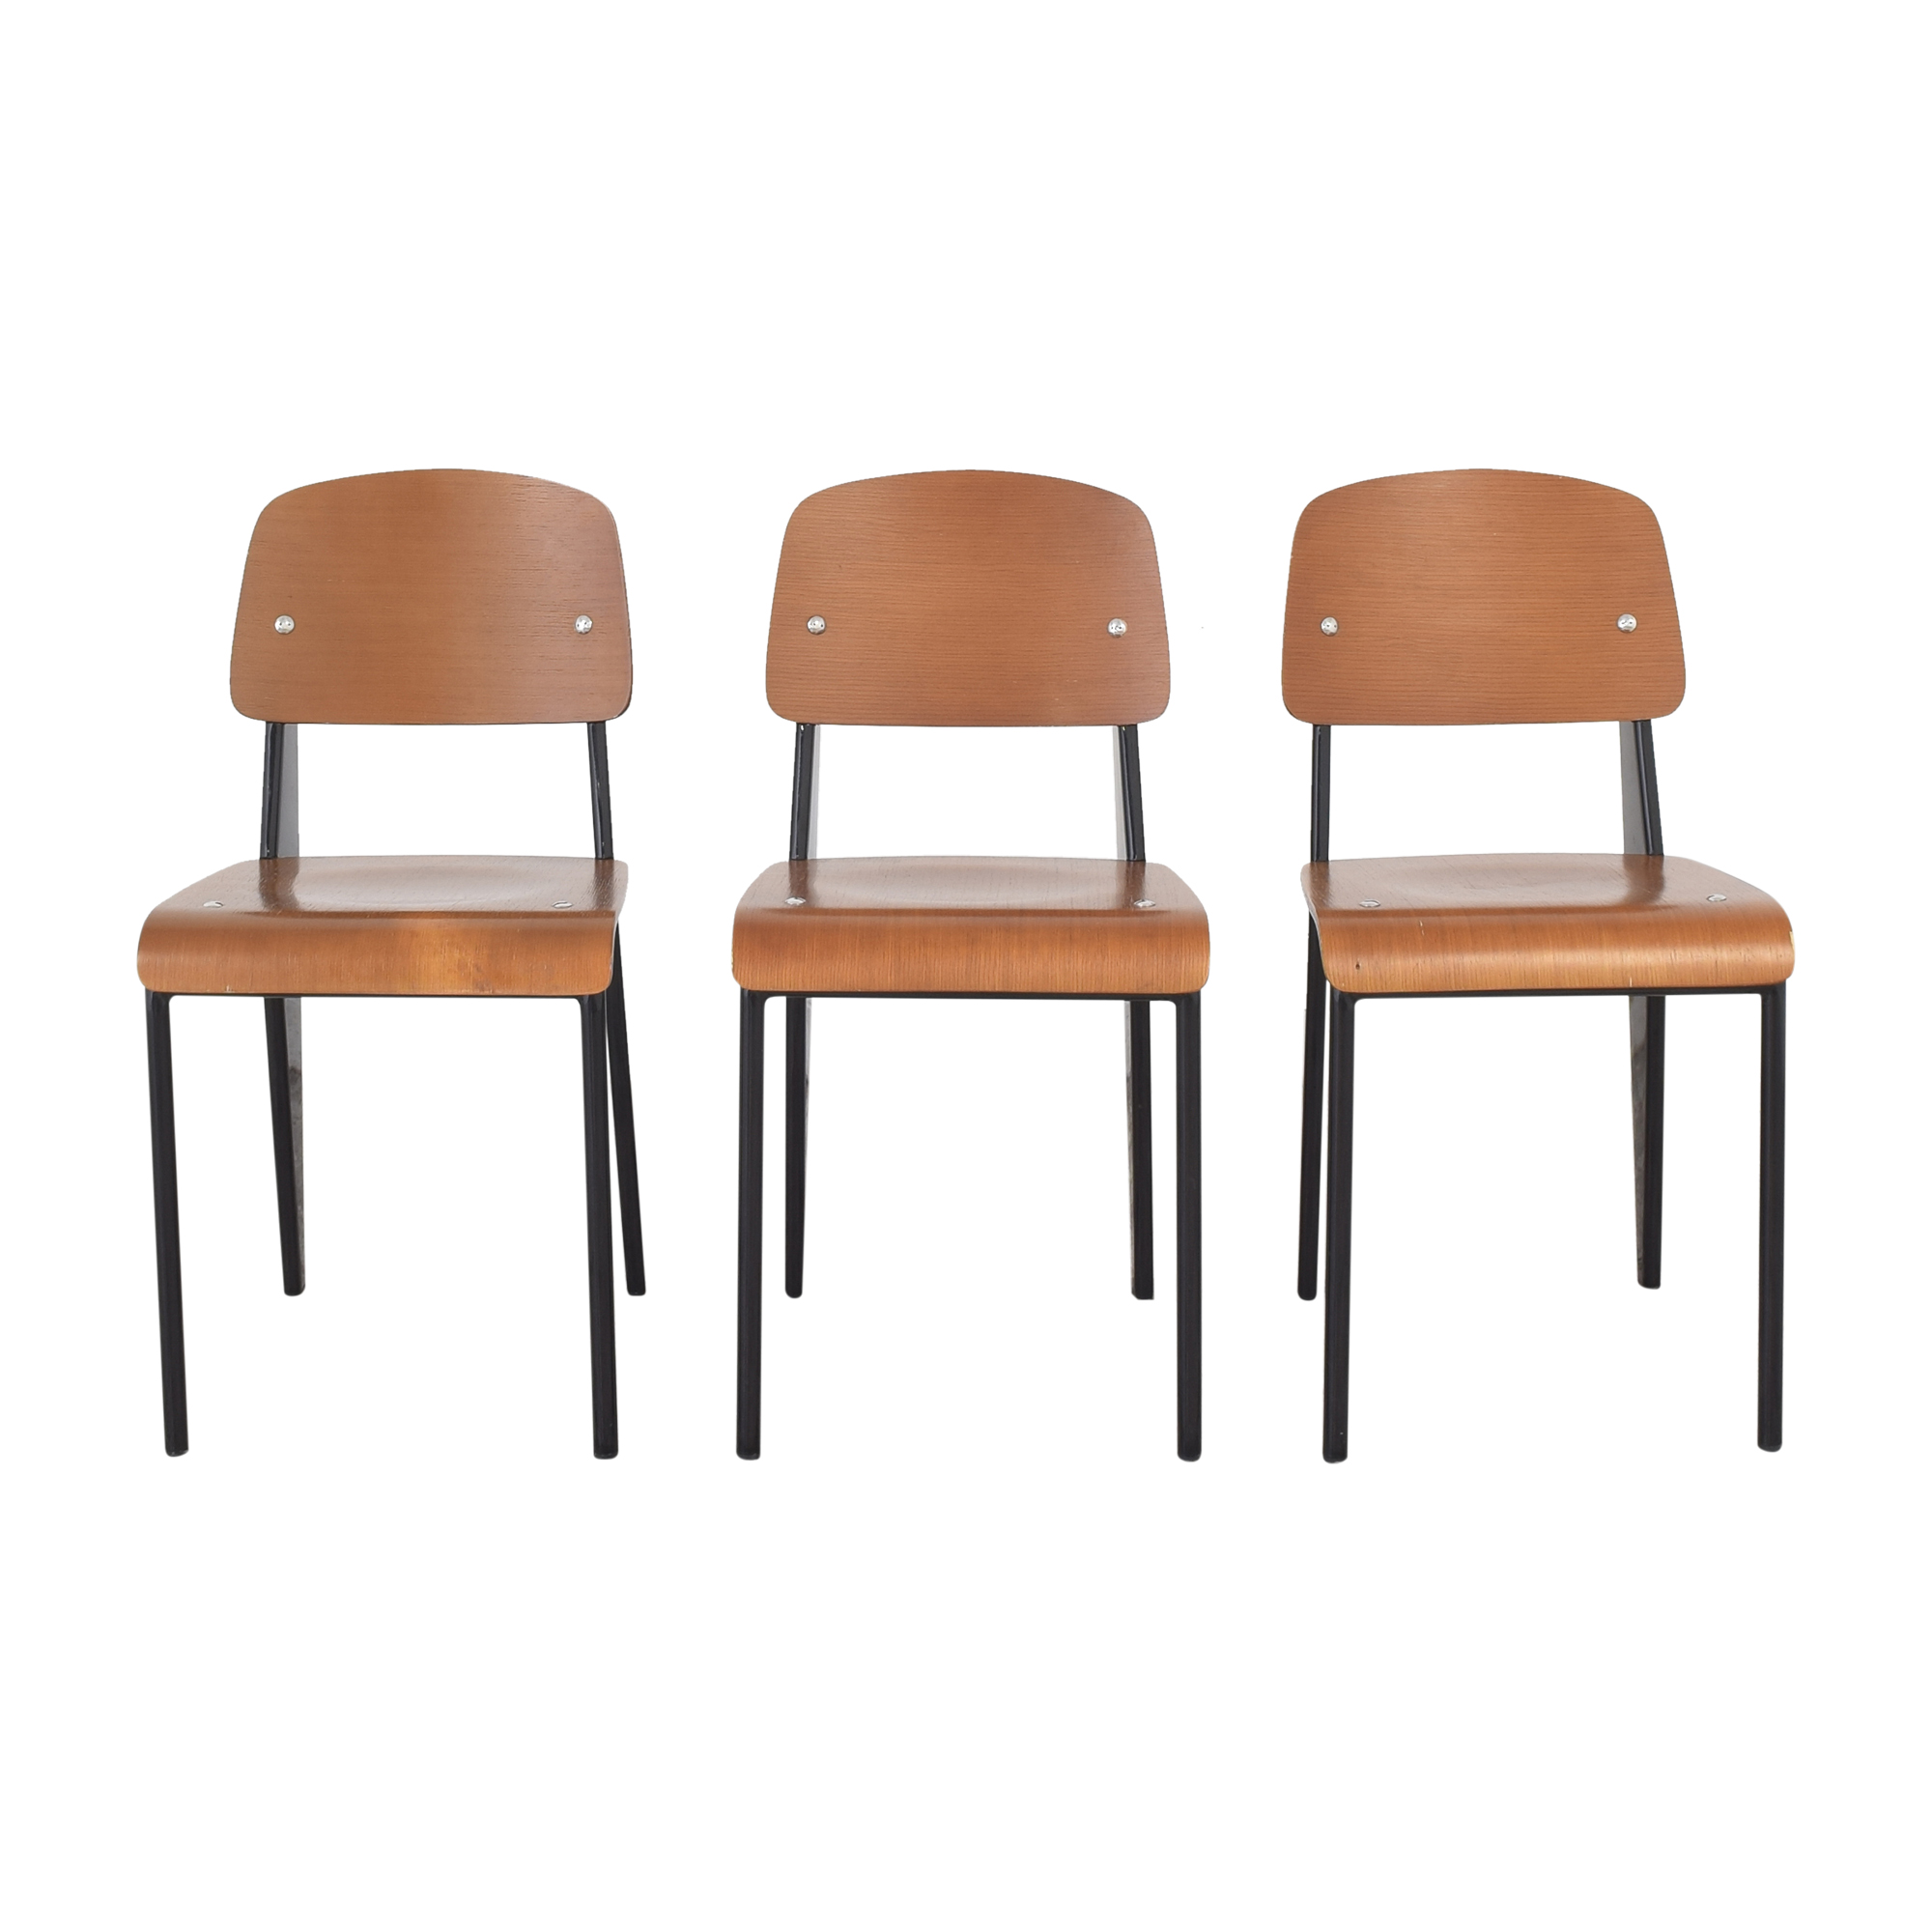 Jean Prouve-Style Chairs on sale